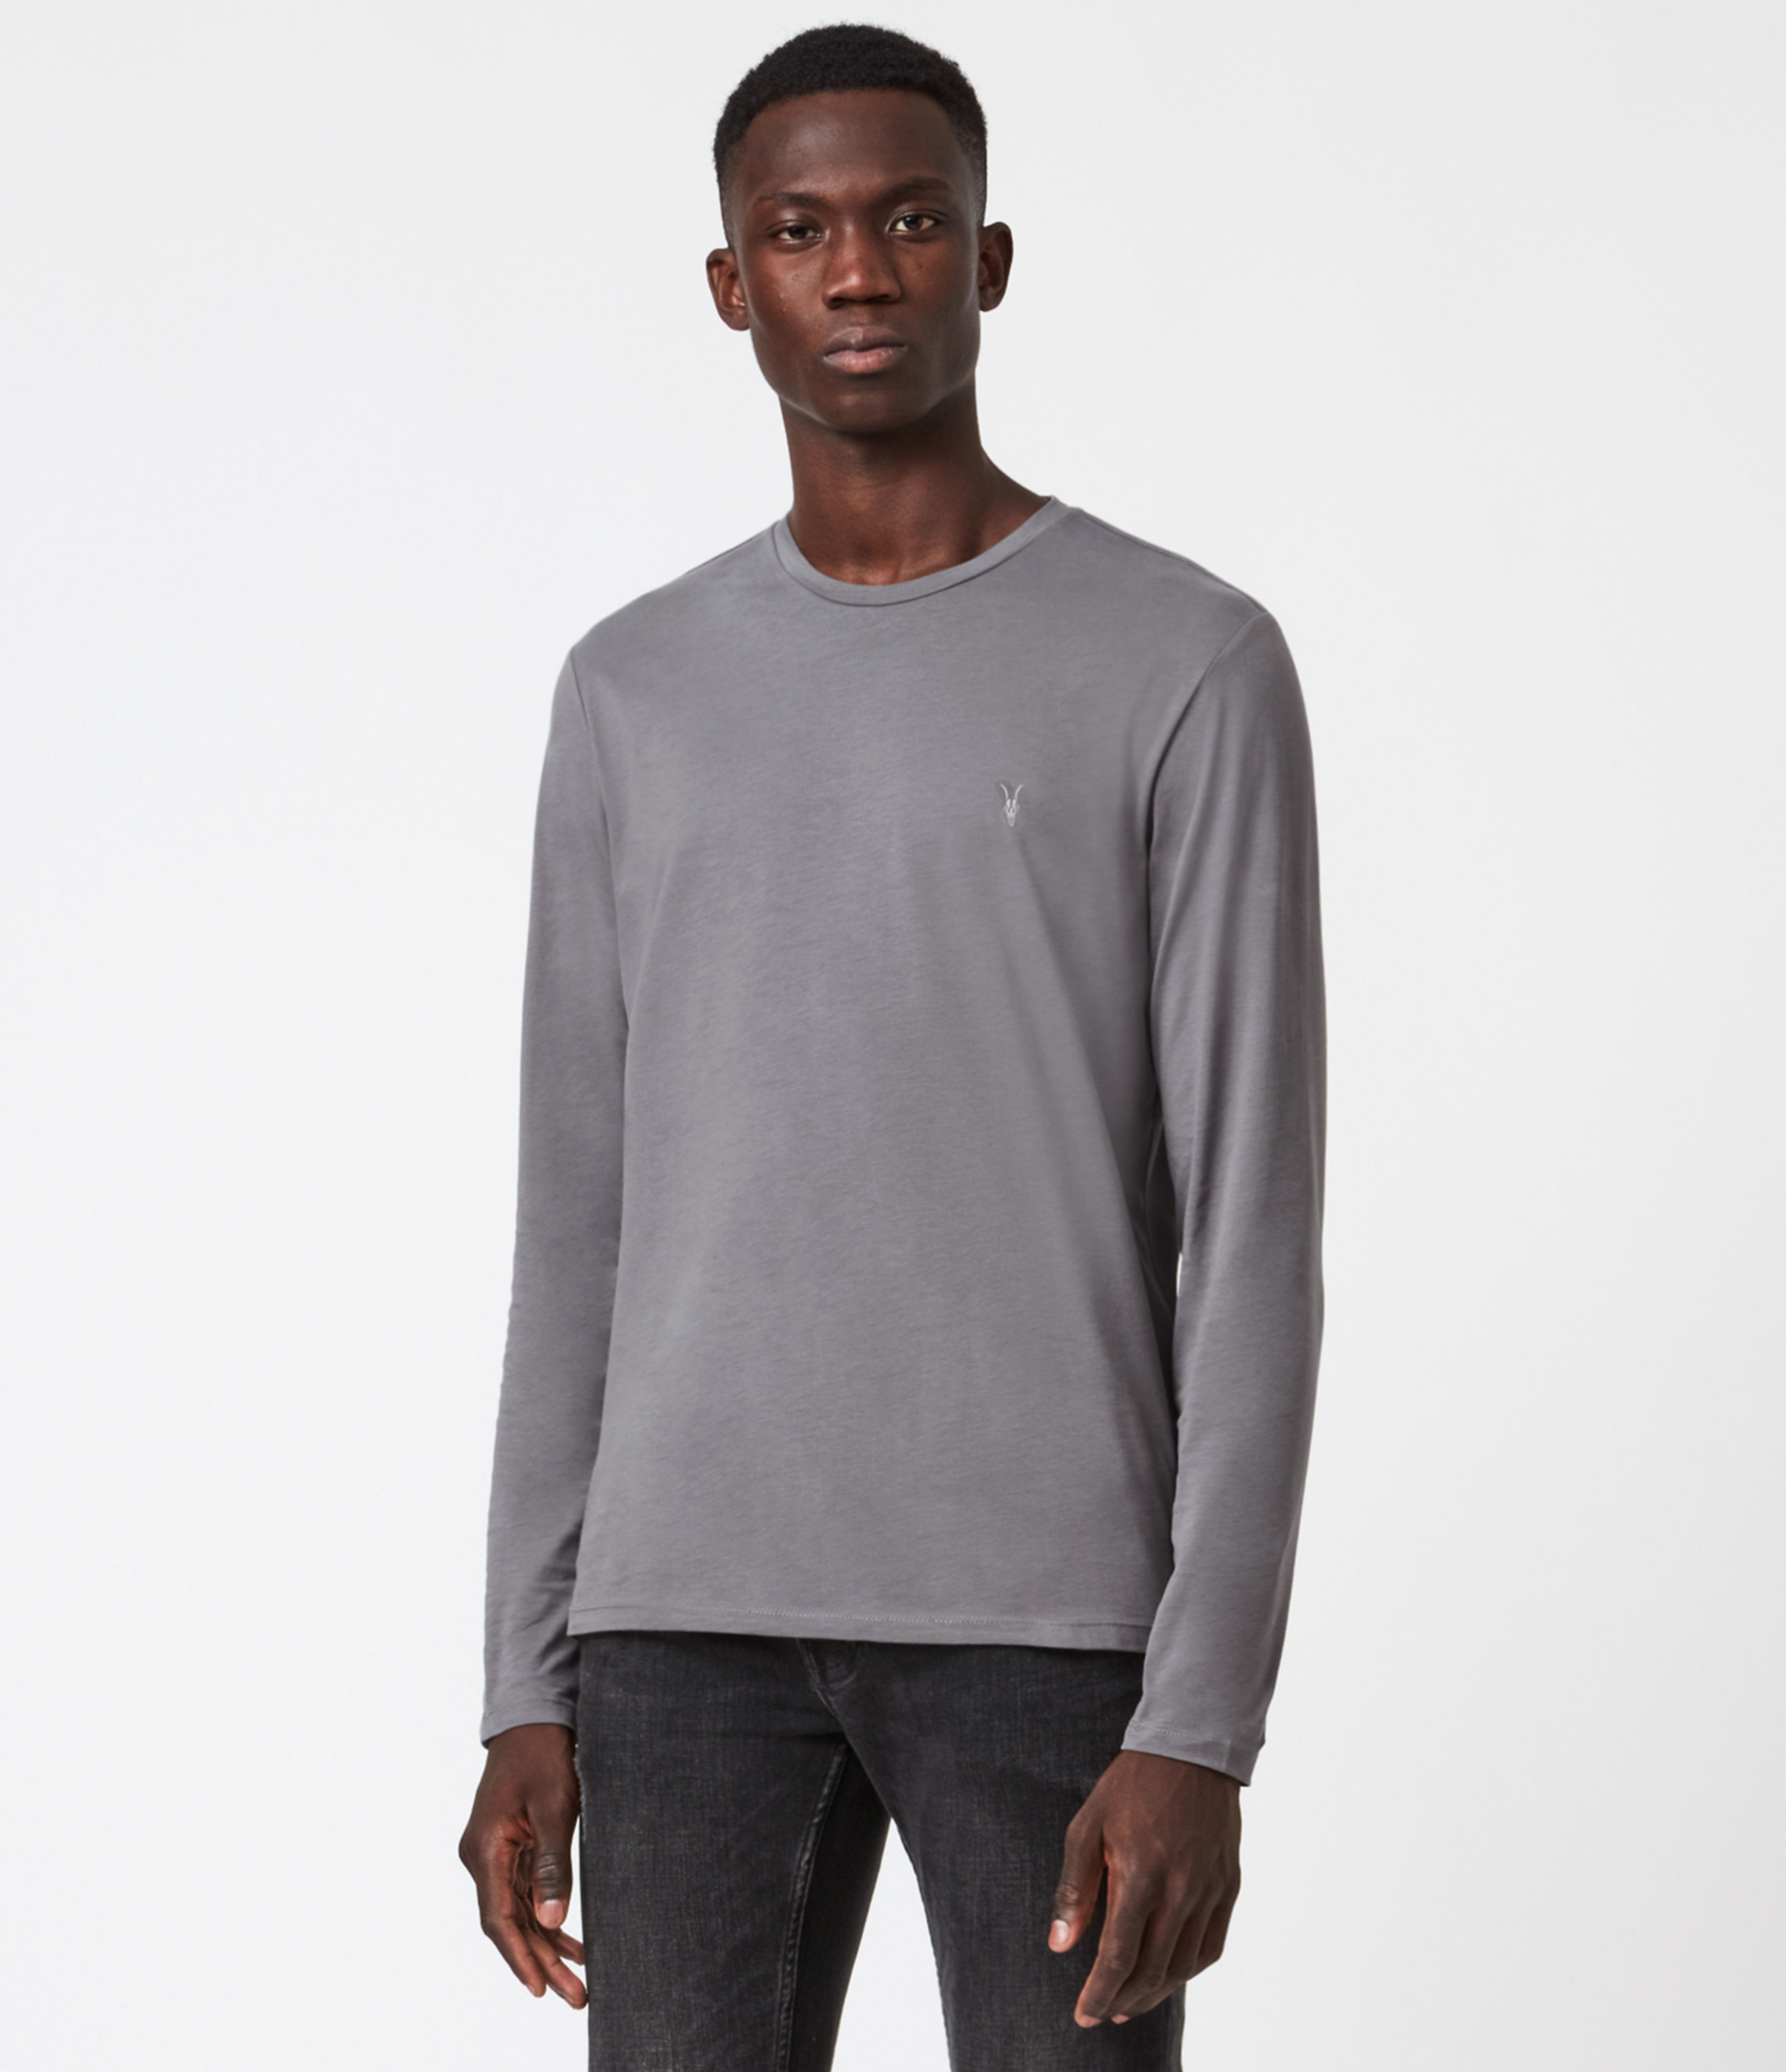 AllSaints Brace Long Sleeve Tonic Crew T-Shirt